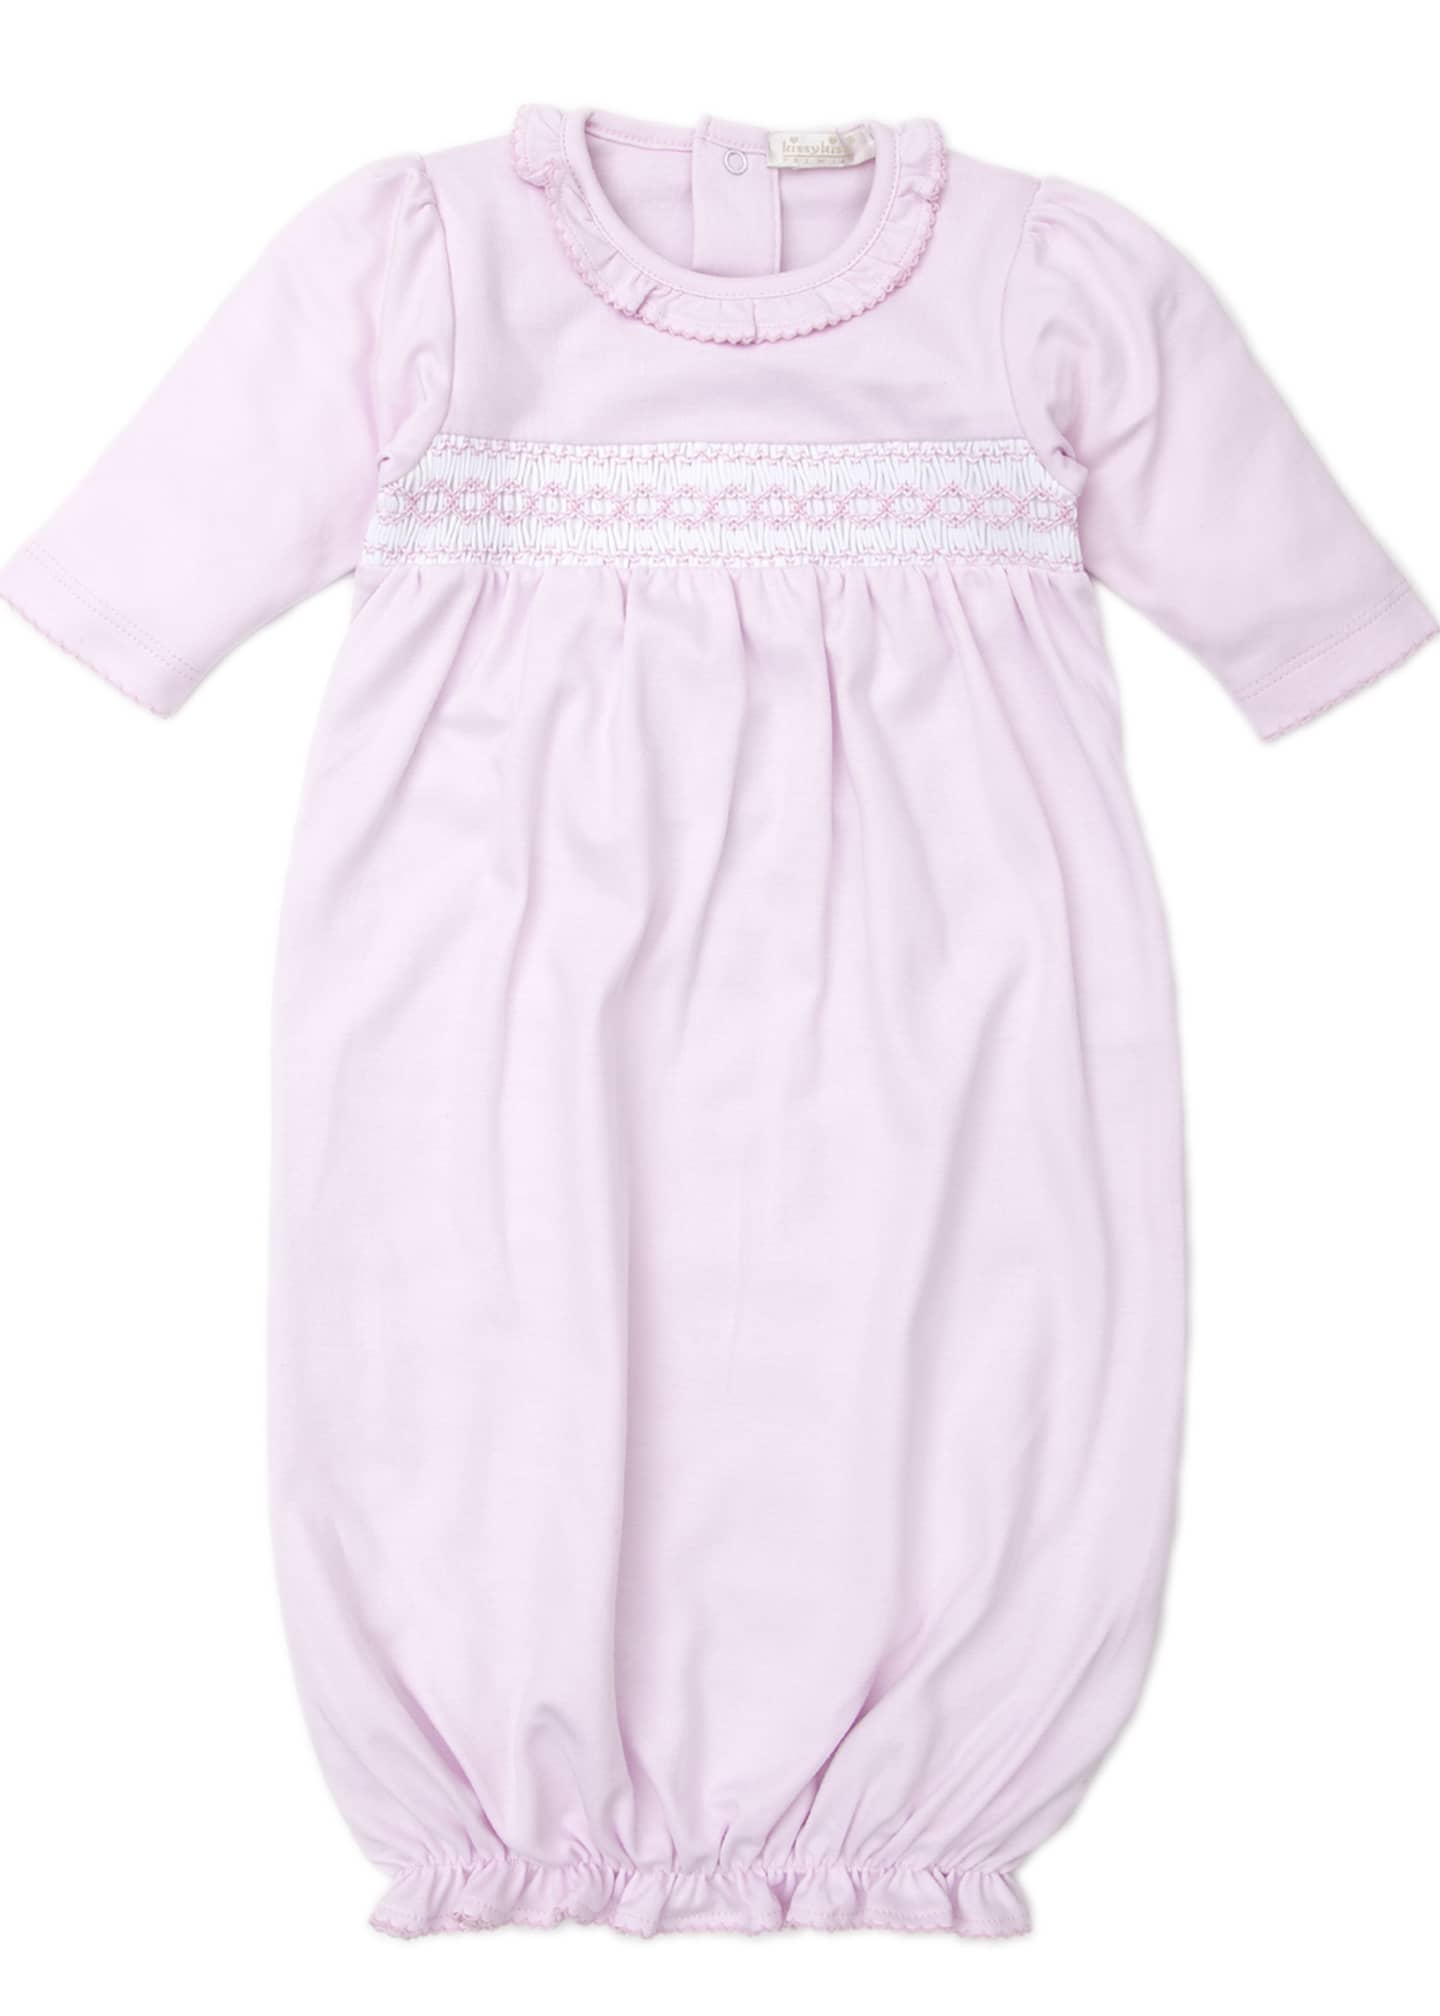 Image 1 of 1: CLB Fall Pink Sleep Gown, Size Newborn-Small